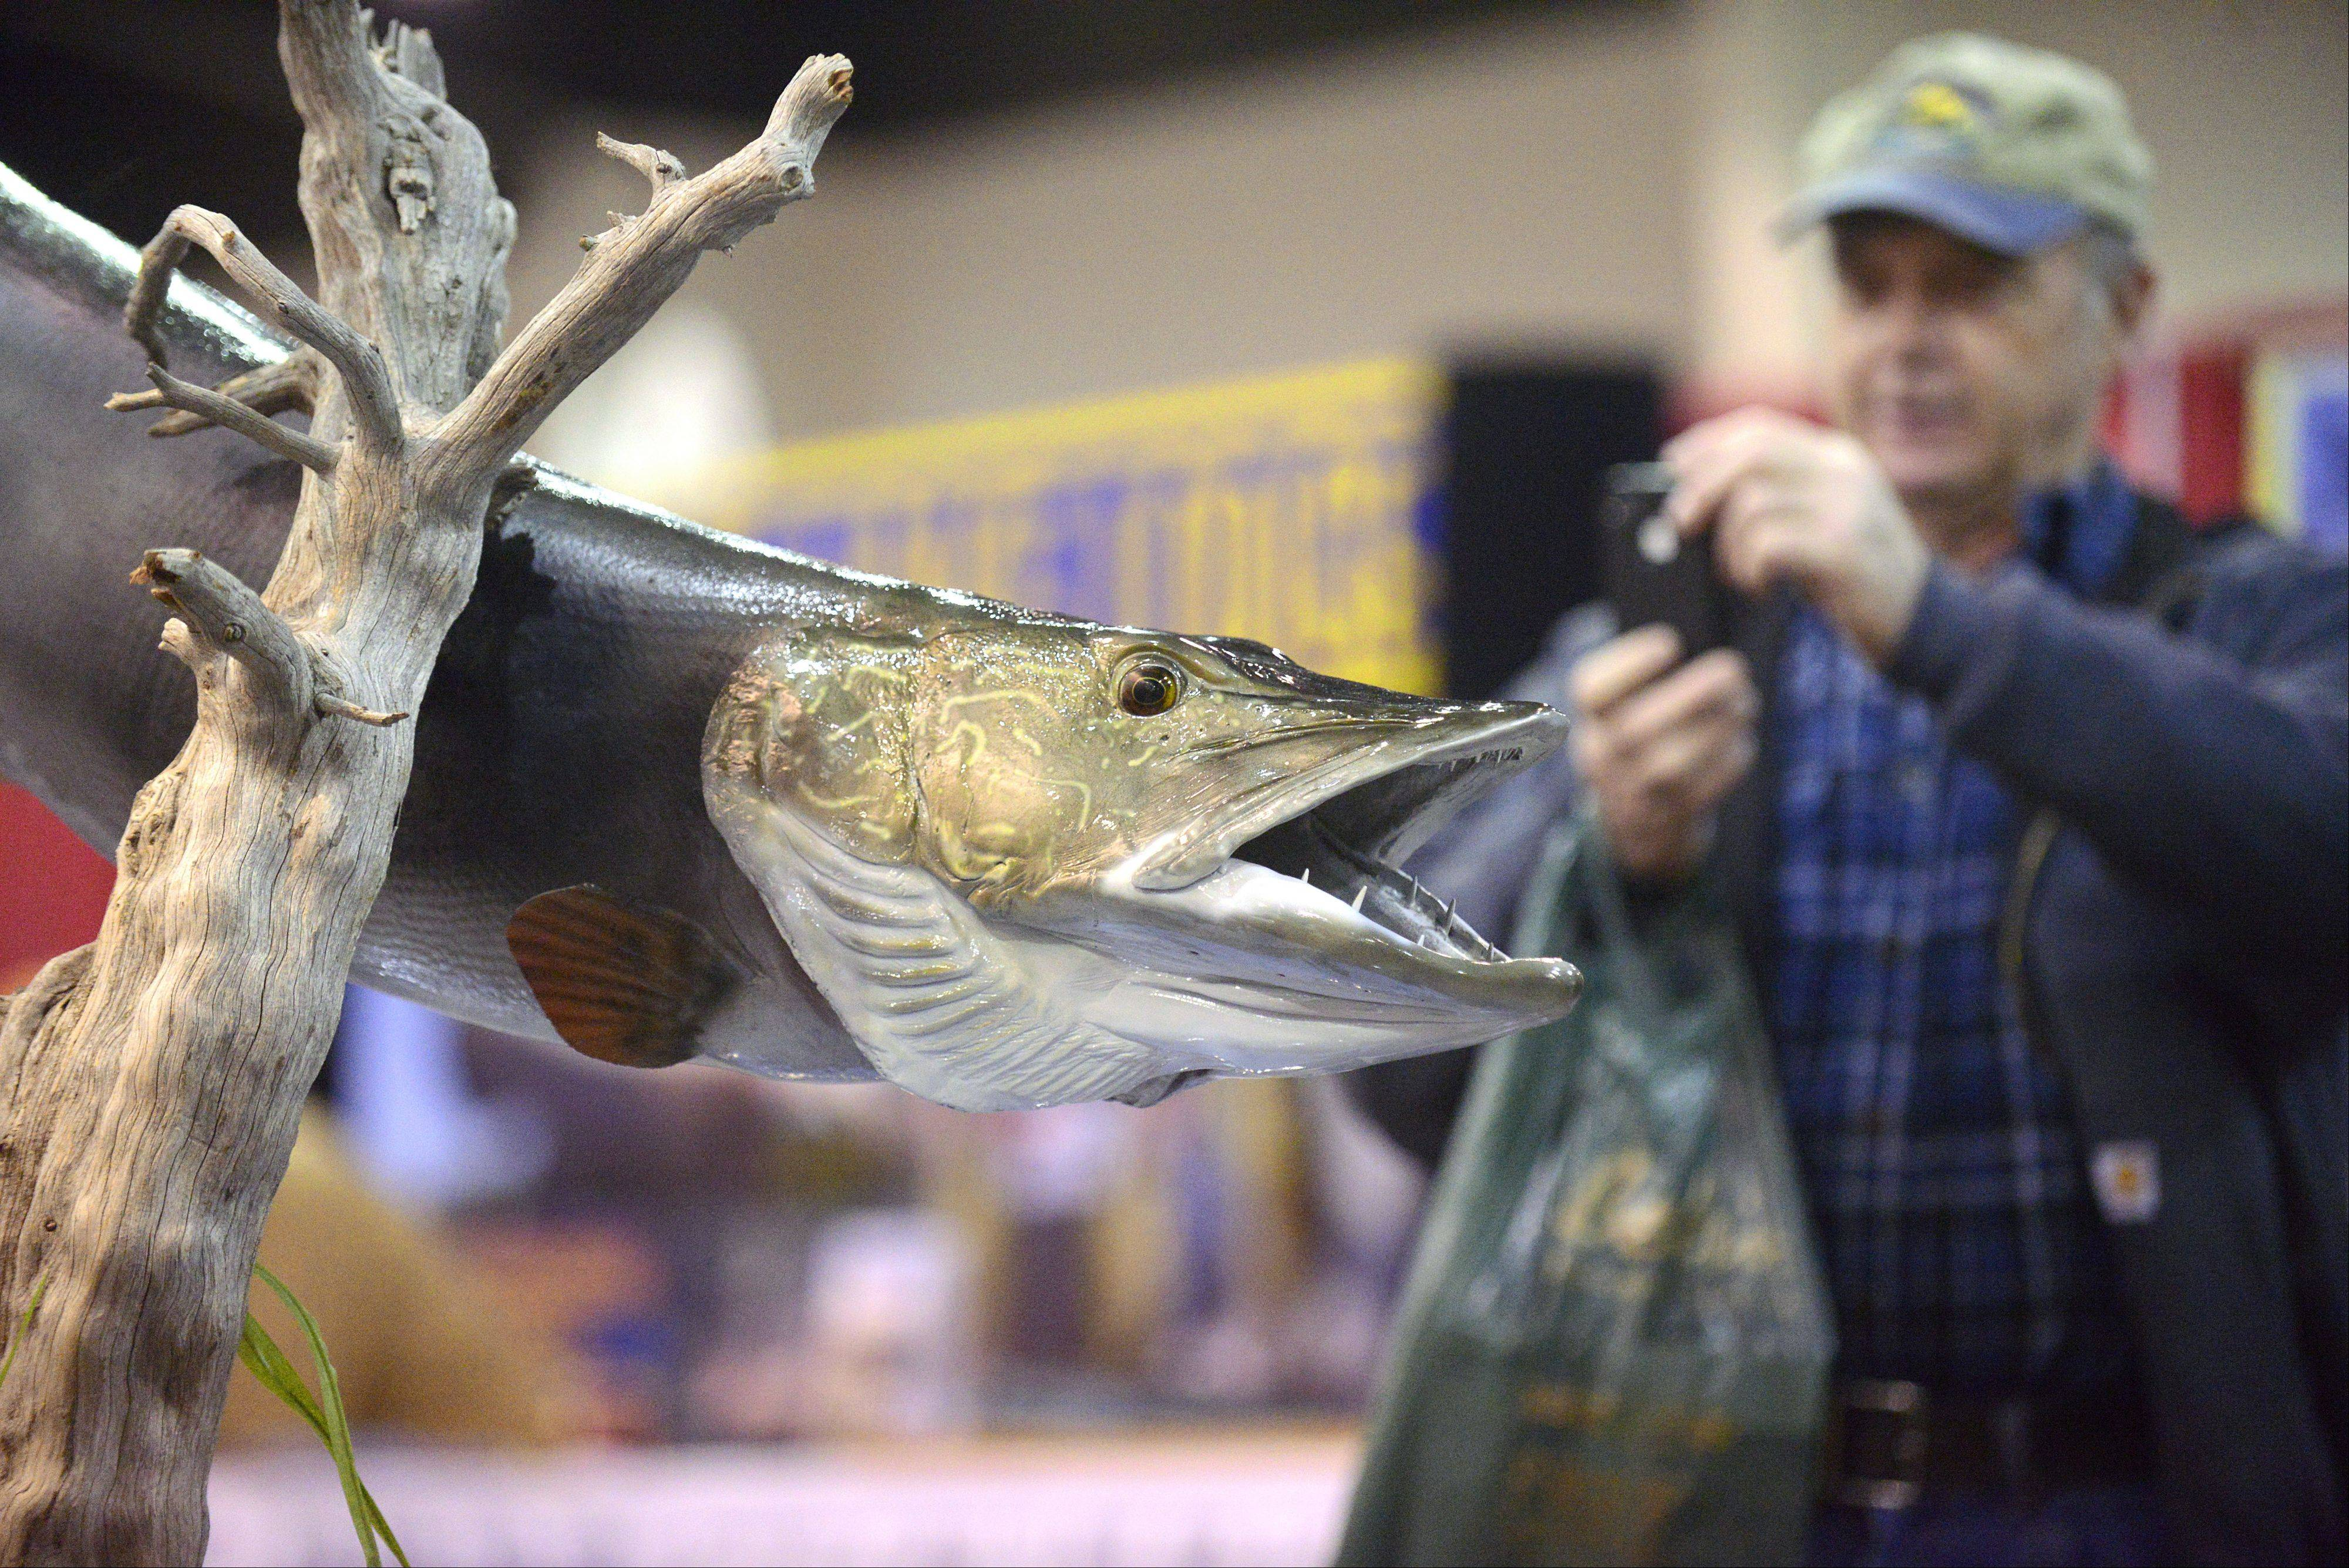 Dan Wallis of Oswego readies to take a picture of a Northern Pike at the 30th annual All-Canada Show at Pheasant Run's Mega Center in St. Charles on Saturday. Wallis and his step-son, Glen Hasenheyer of Aurora come to the show every year. Hasenheyer got his picture taken with the fish too.